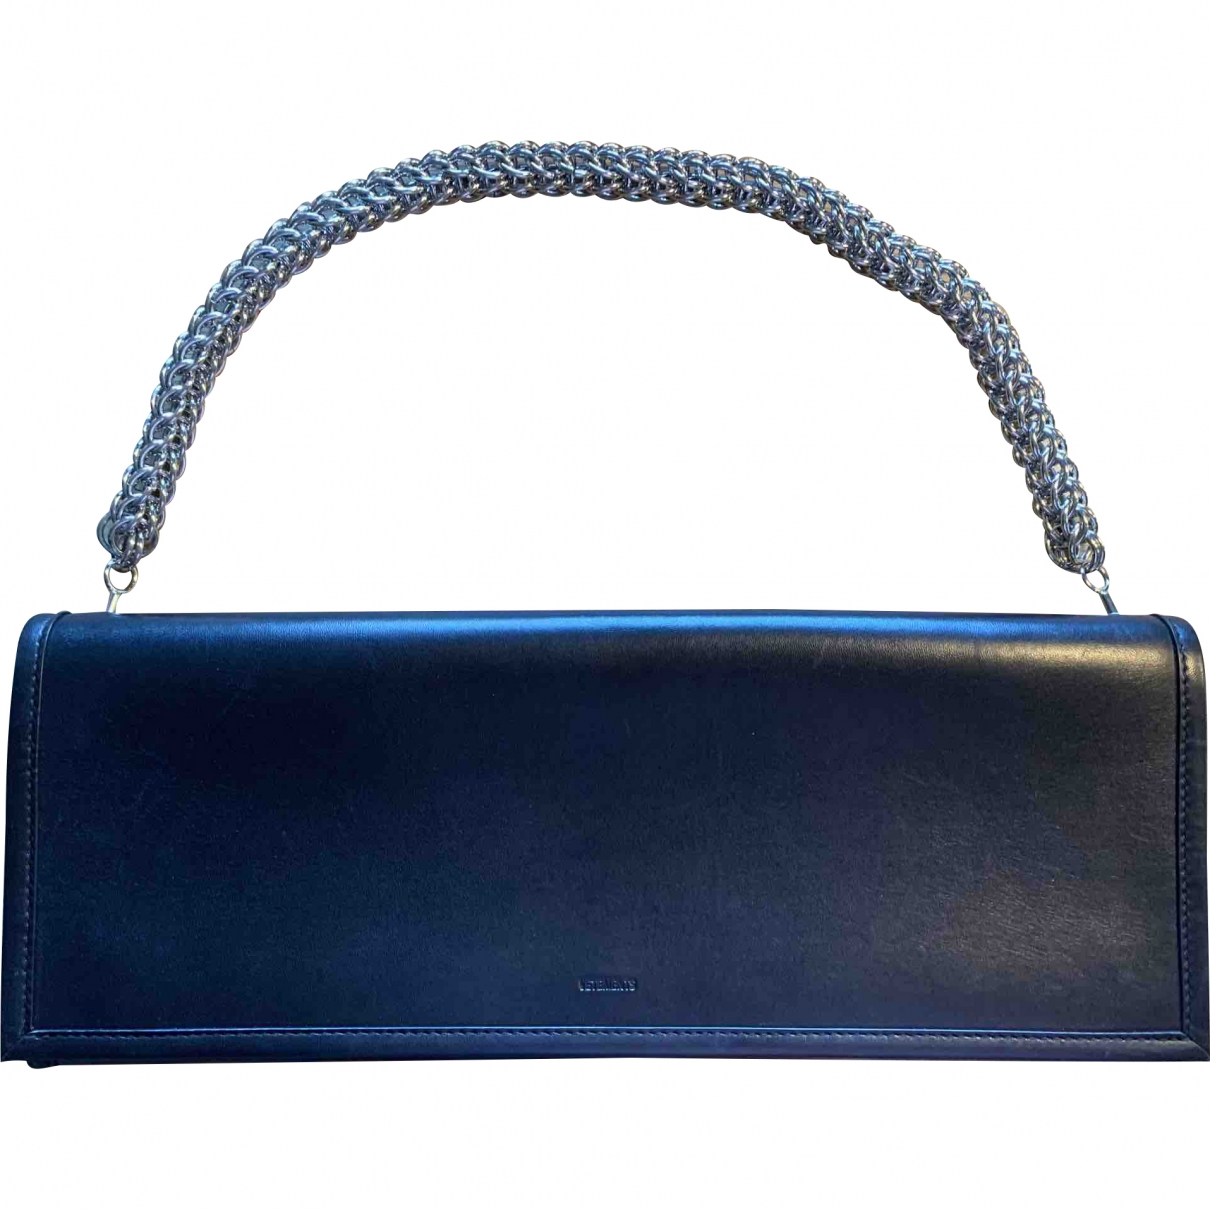 Vetements \N Black Leather Clutch bag for Women \N